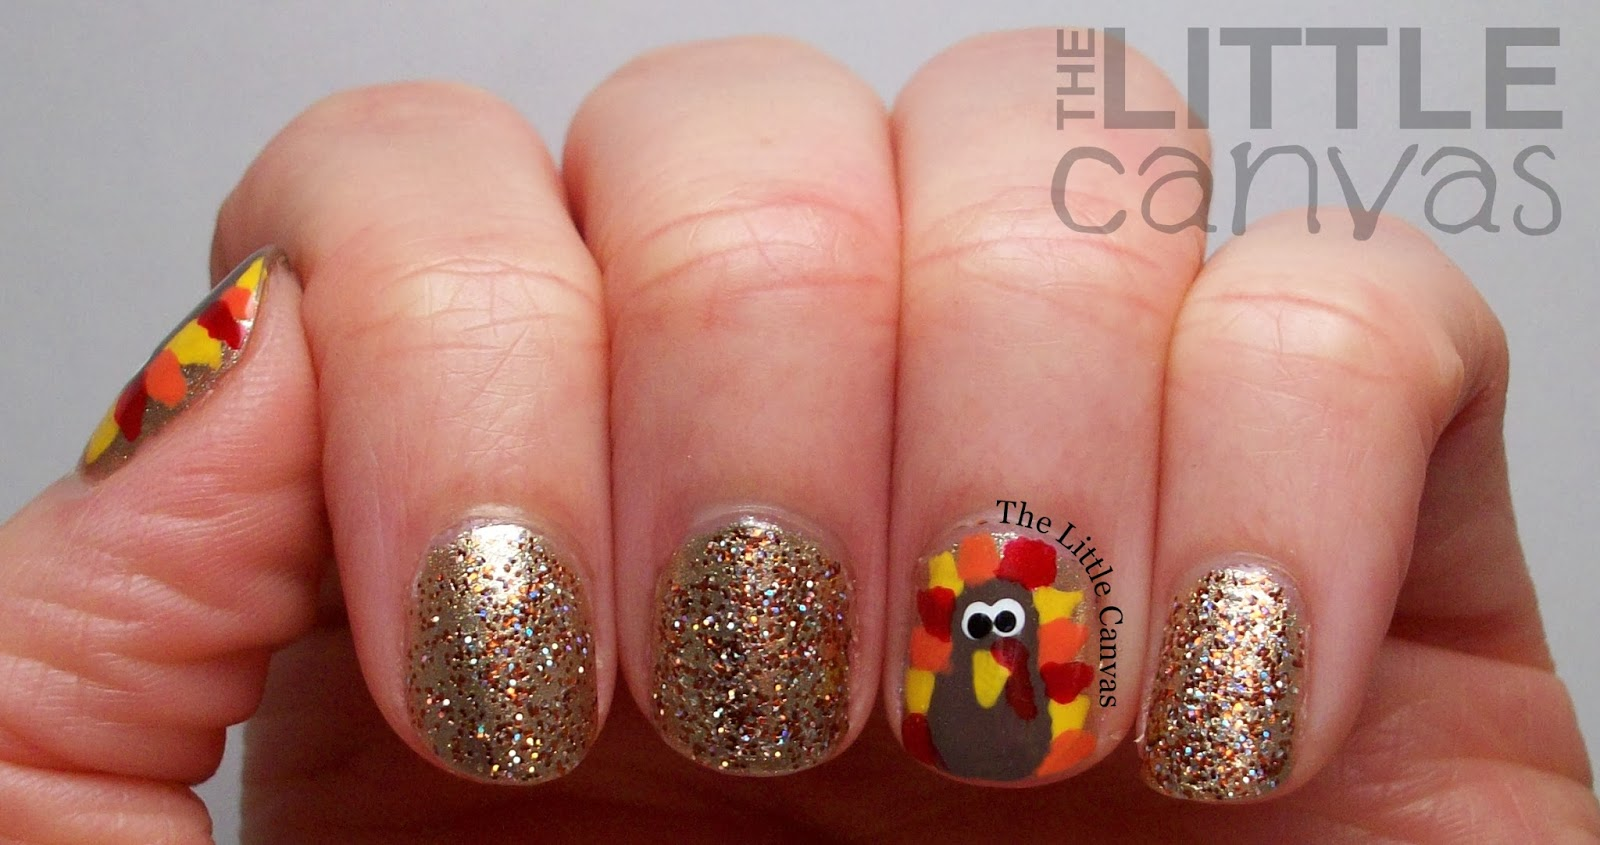 Happy Thanksgiving! Turkey Nails! - The Little Canvas